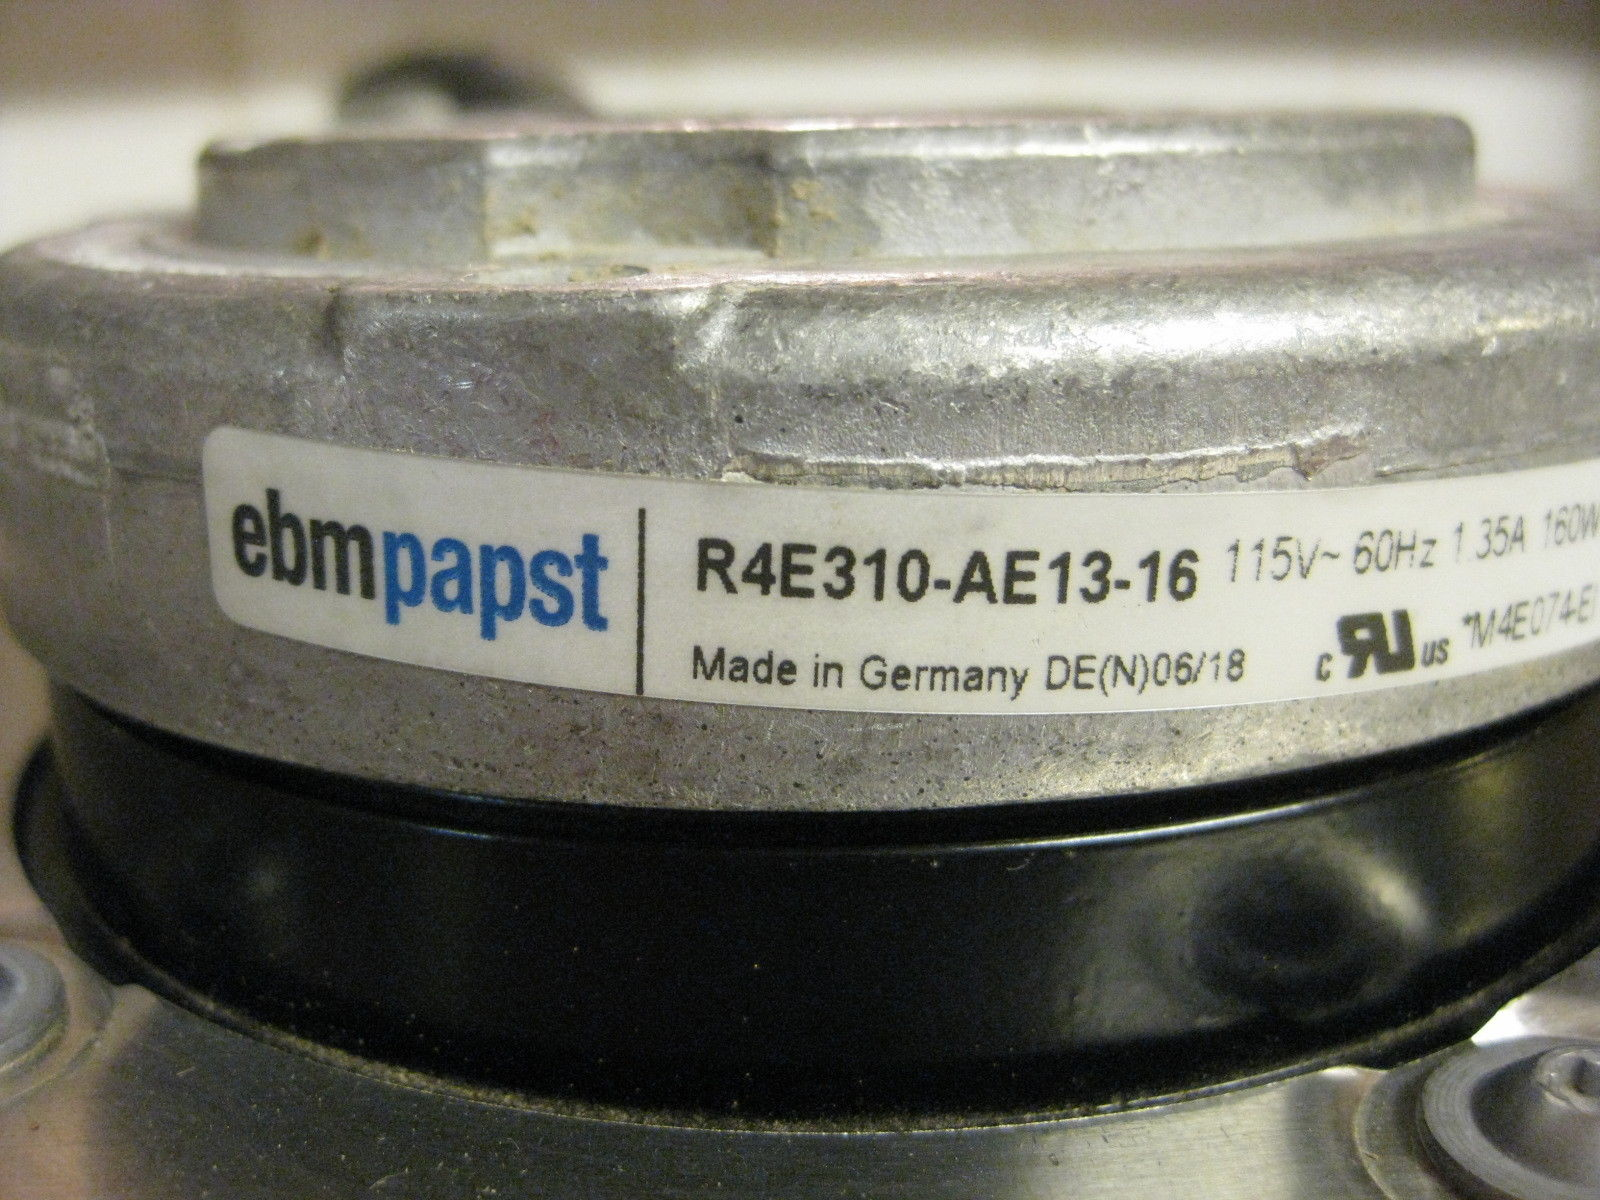 ebm papst R4E310-AE13-16 115VAC Impeller cooling Fan